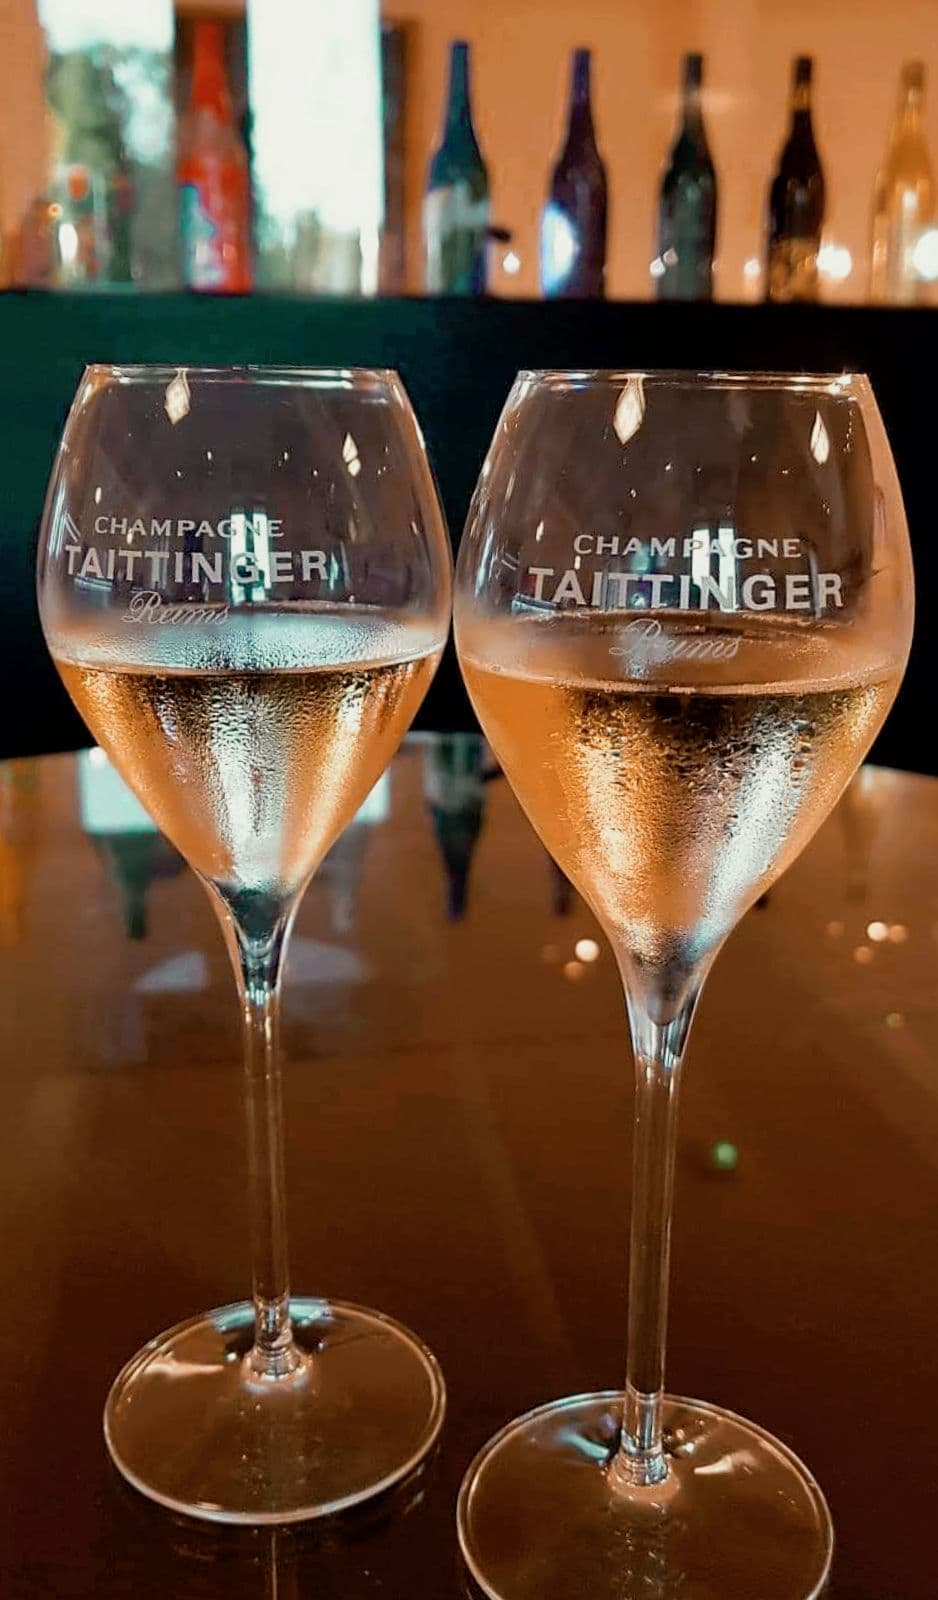 Two glasses of Taittinger champagne at a champagne tour in Reims.